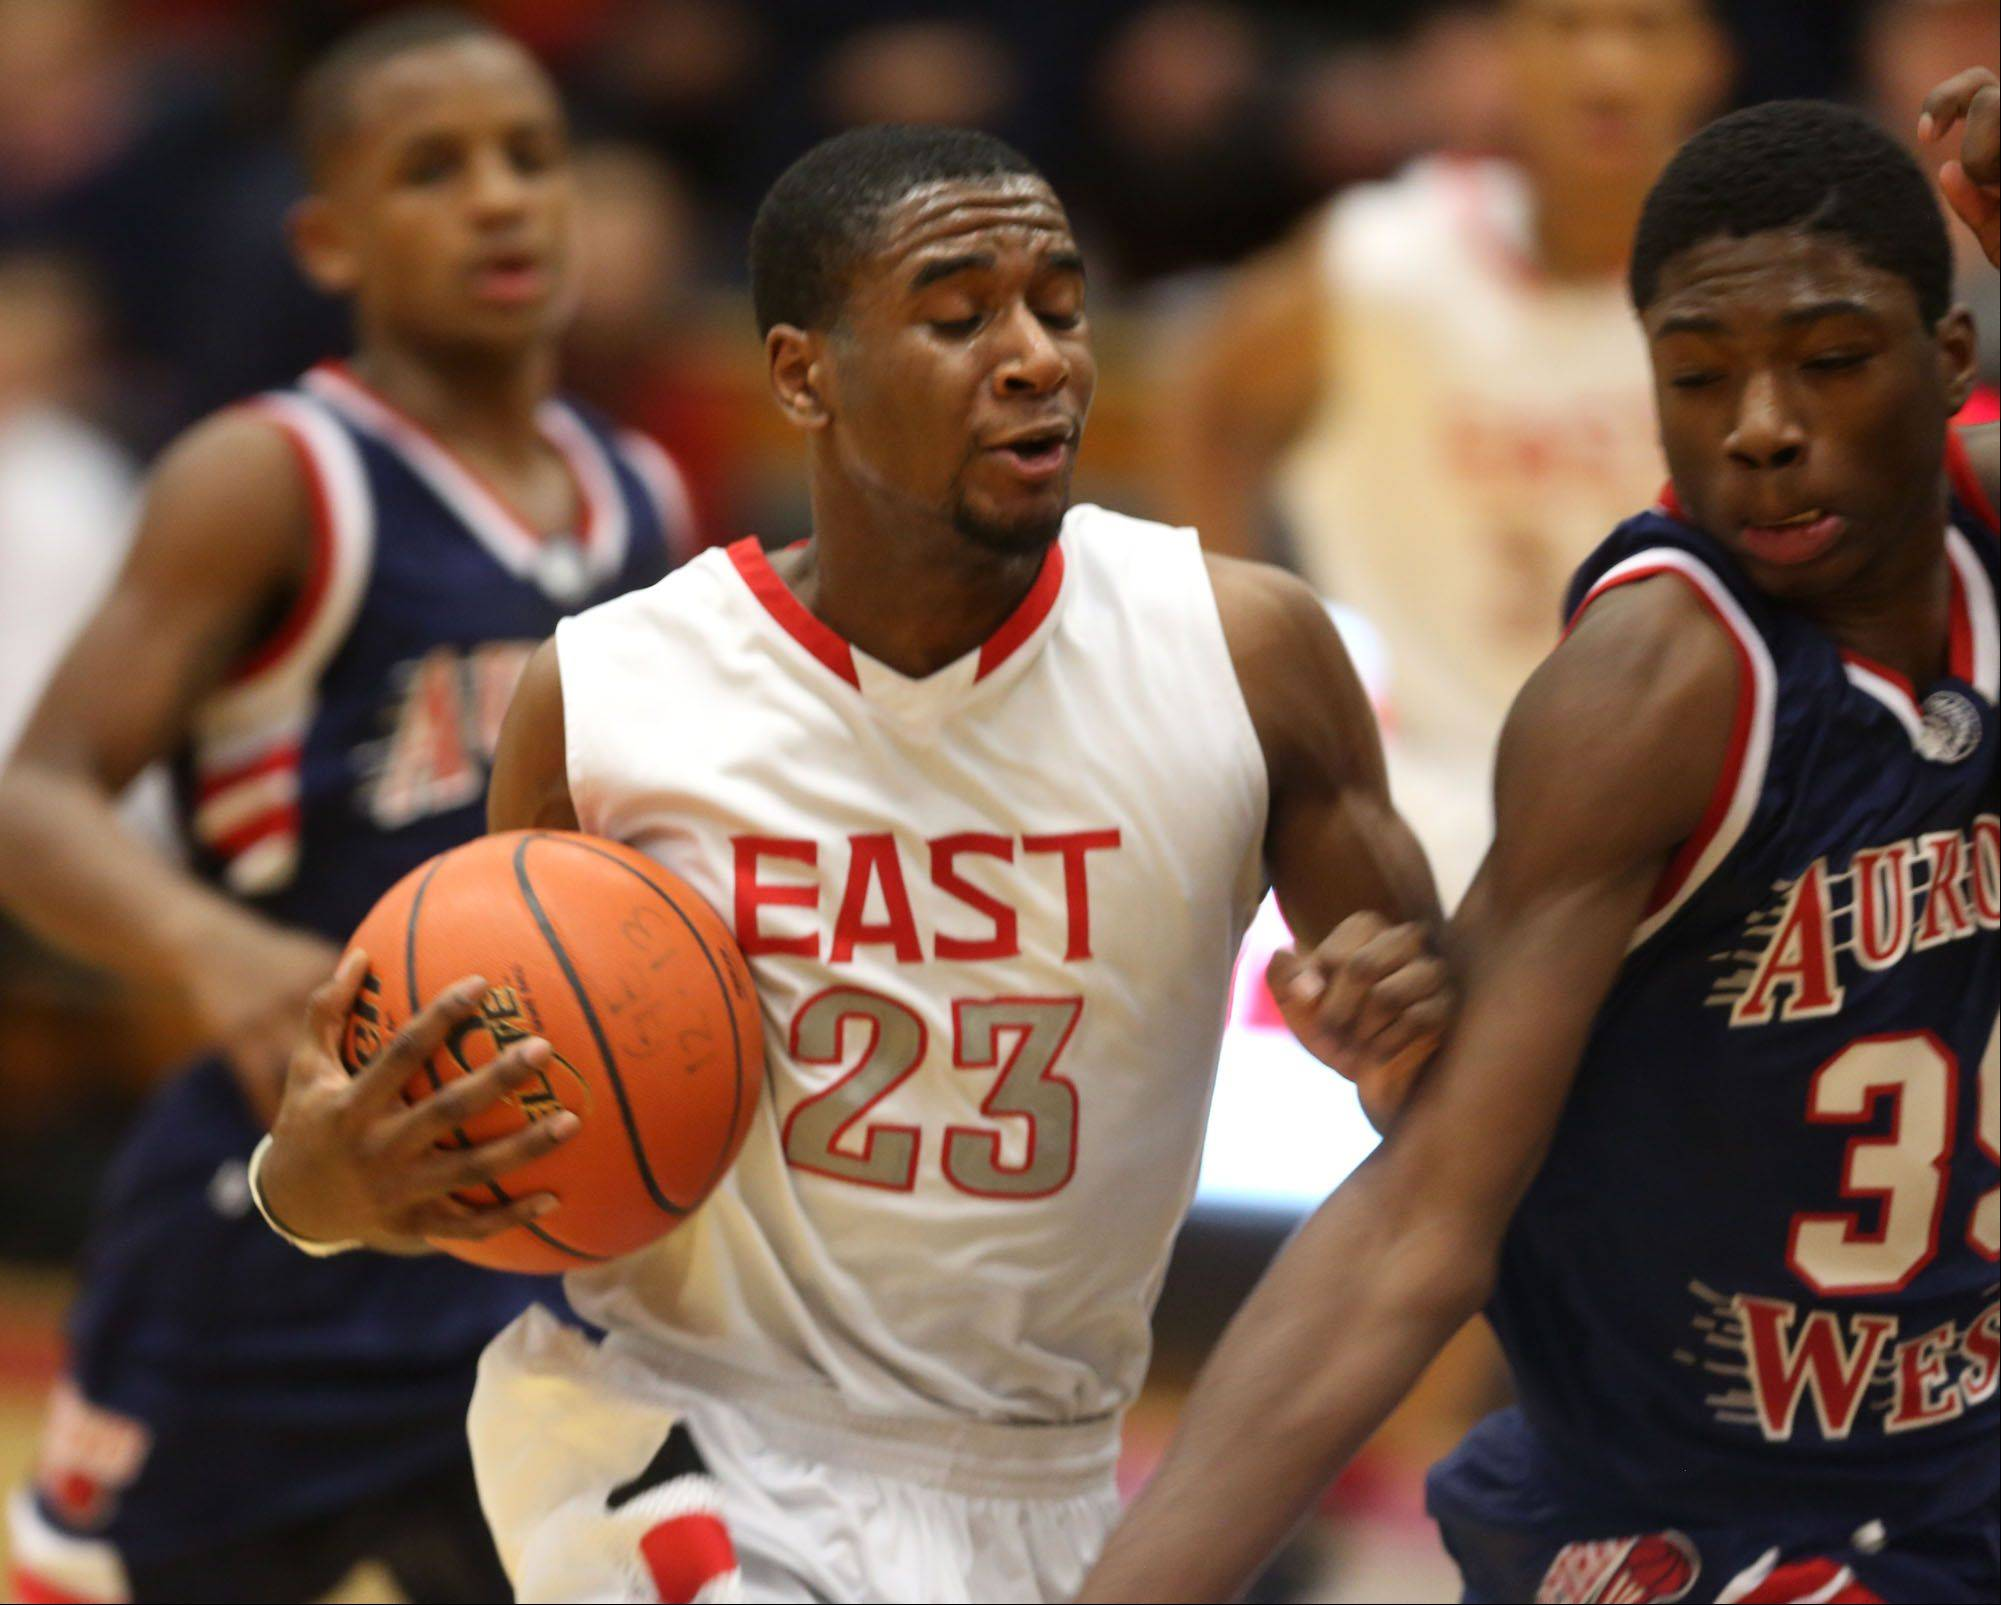 Glenbard East�s Jaron Hall moves the ball upcourt against West Aurora.